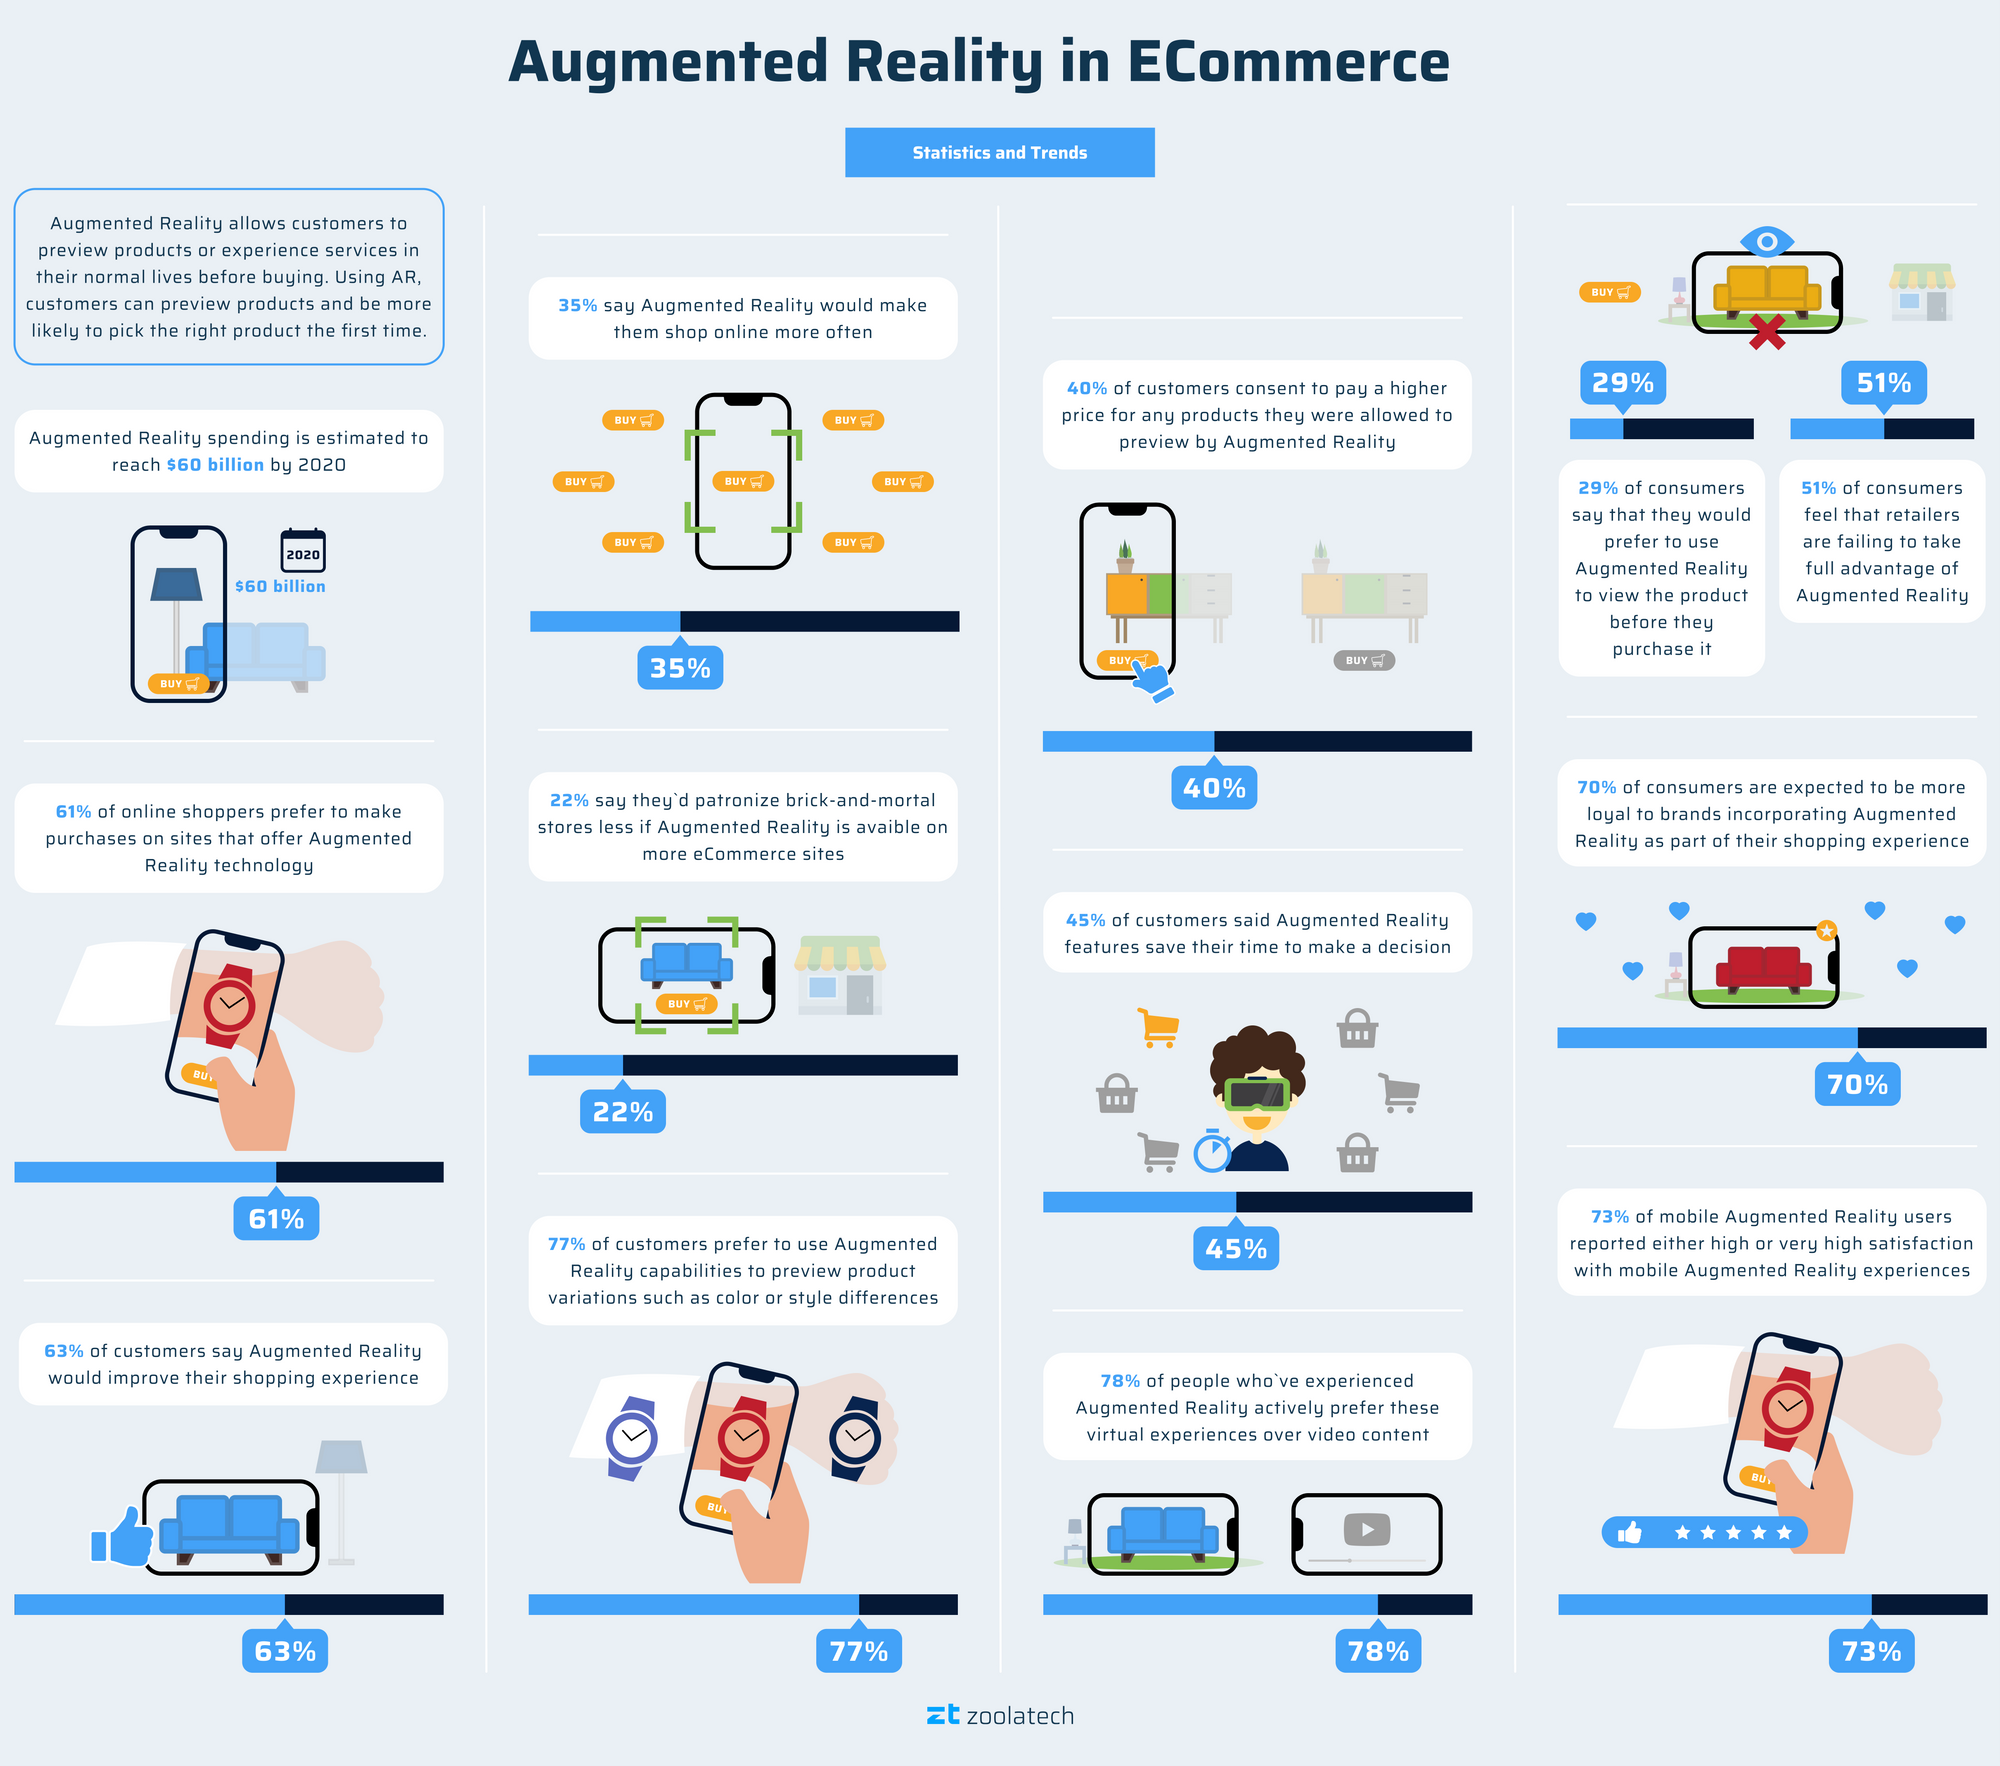 Augmented Reality in eCommerce: Statistics and Trends.